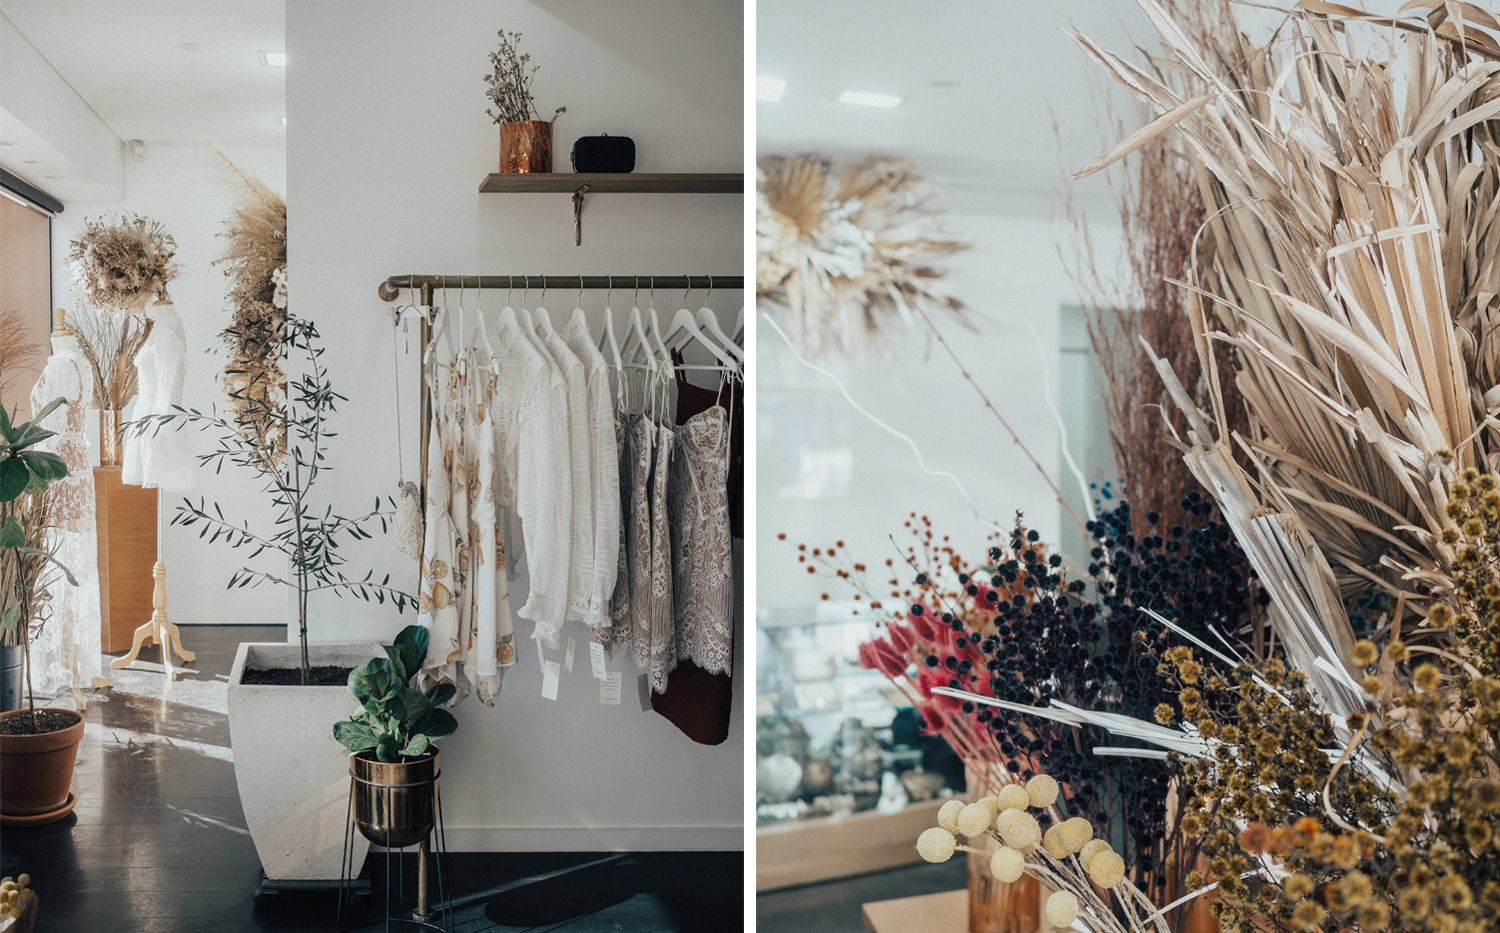 Travel_Australia_Guide_Weekend_Destination_Hotel_Airbnb_Newcastle_NSW_New South Wales_Pauline Morrissey_Restaurant_Cafe_Drink_Eat_Stay_Shop_Pushing Pansies.jpg